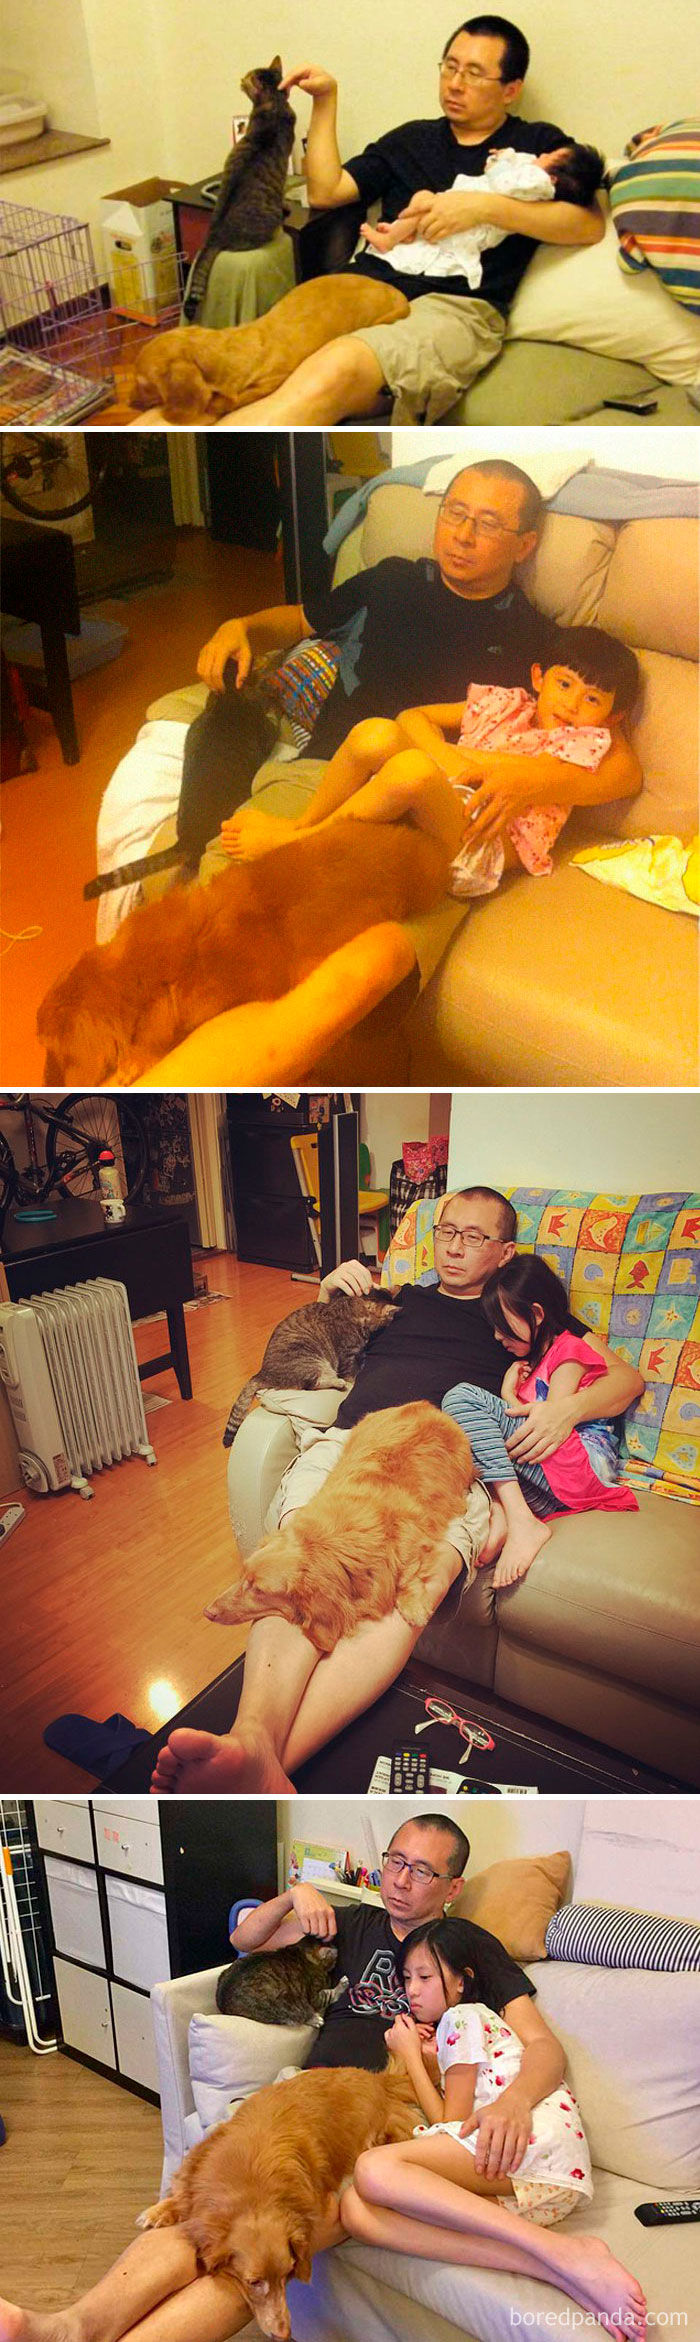 Father, Daughter And Pets Take The Same Photo For 10 Years, And It's Bizarre How Little Things Actually Change